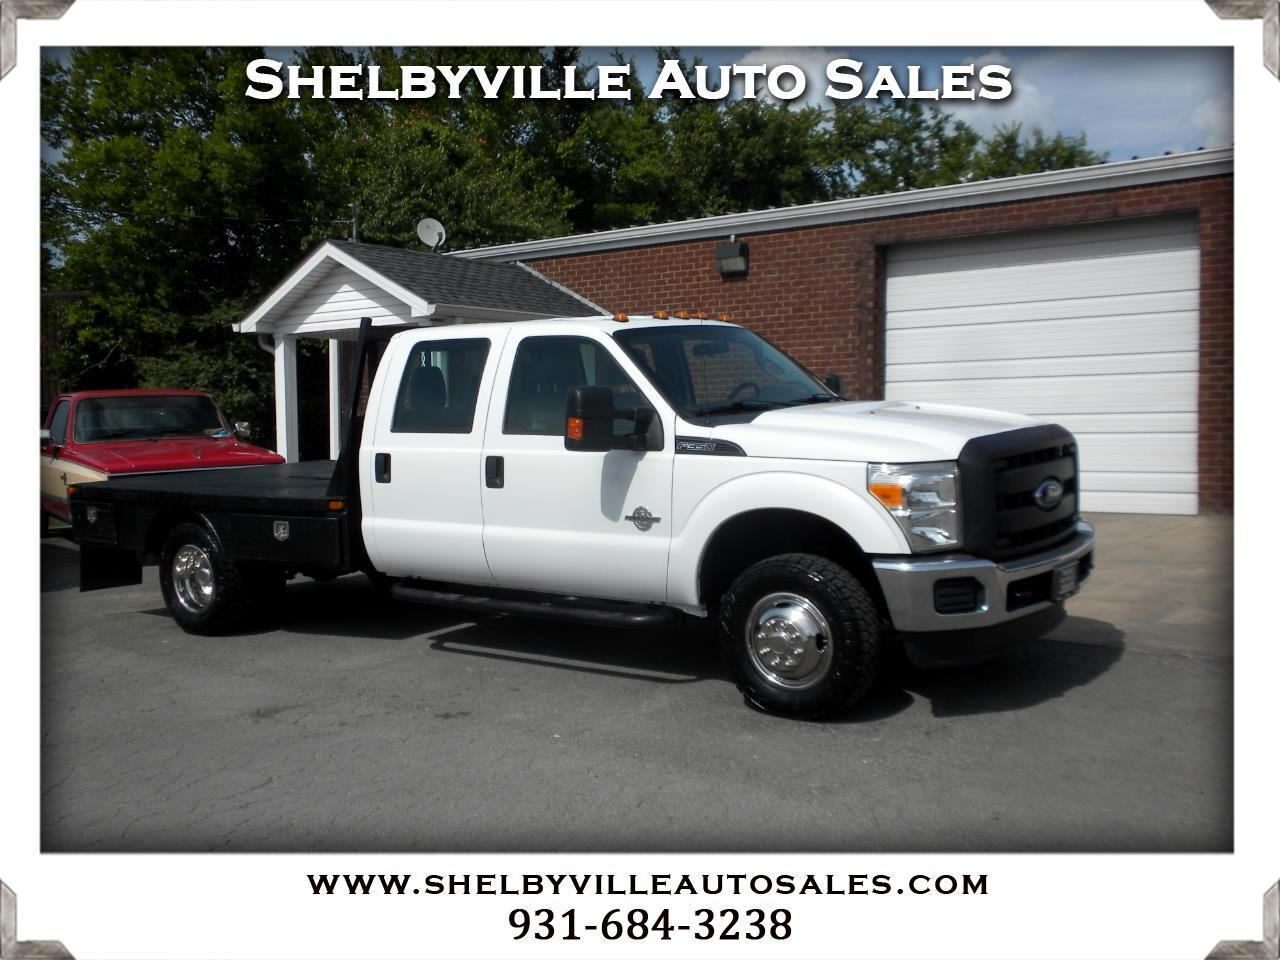 2015 Ford Super Duty F-350 DRW 4X4 Crew Cab XL